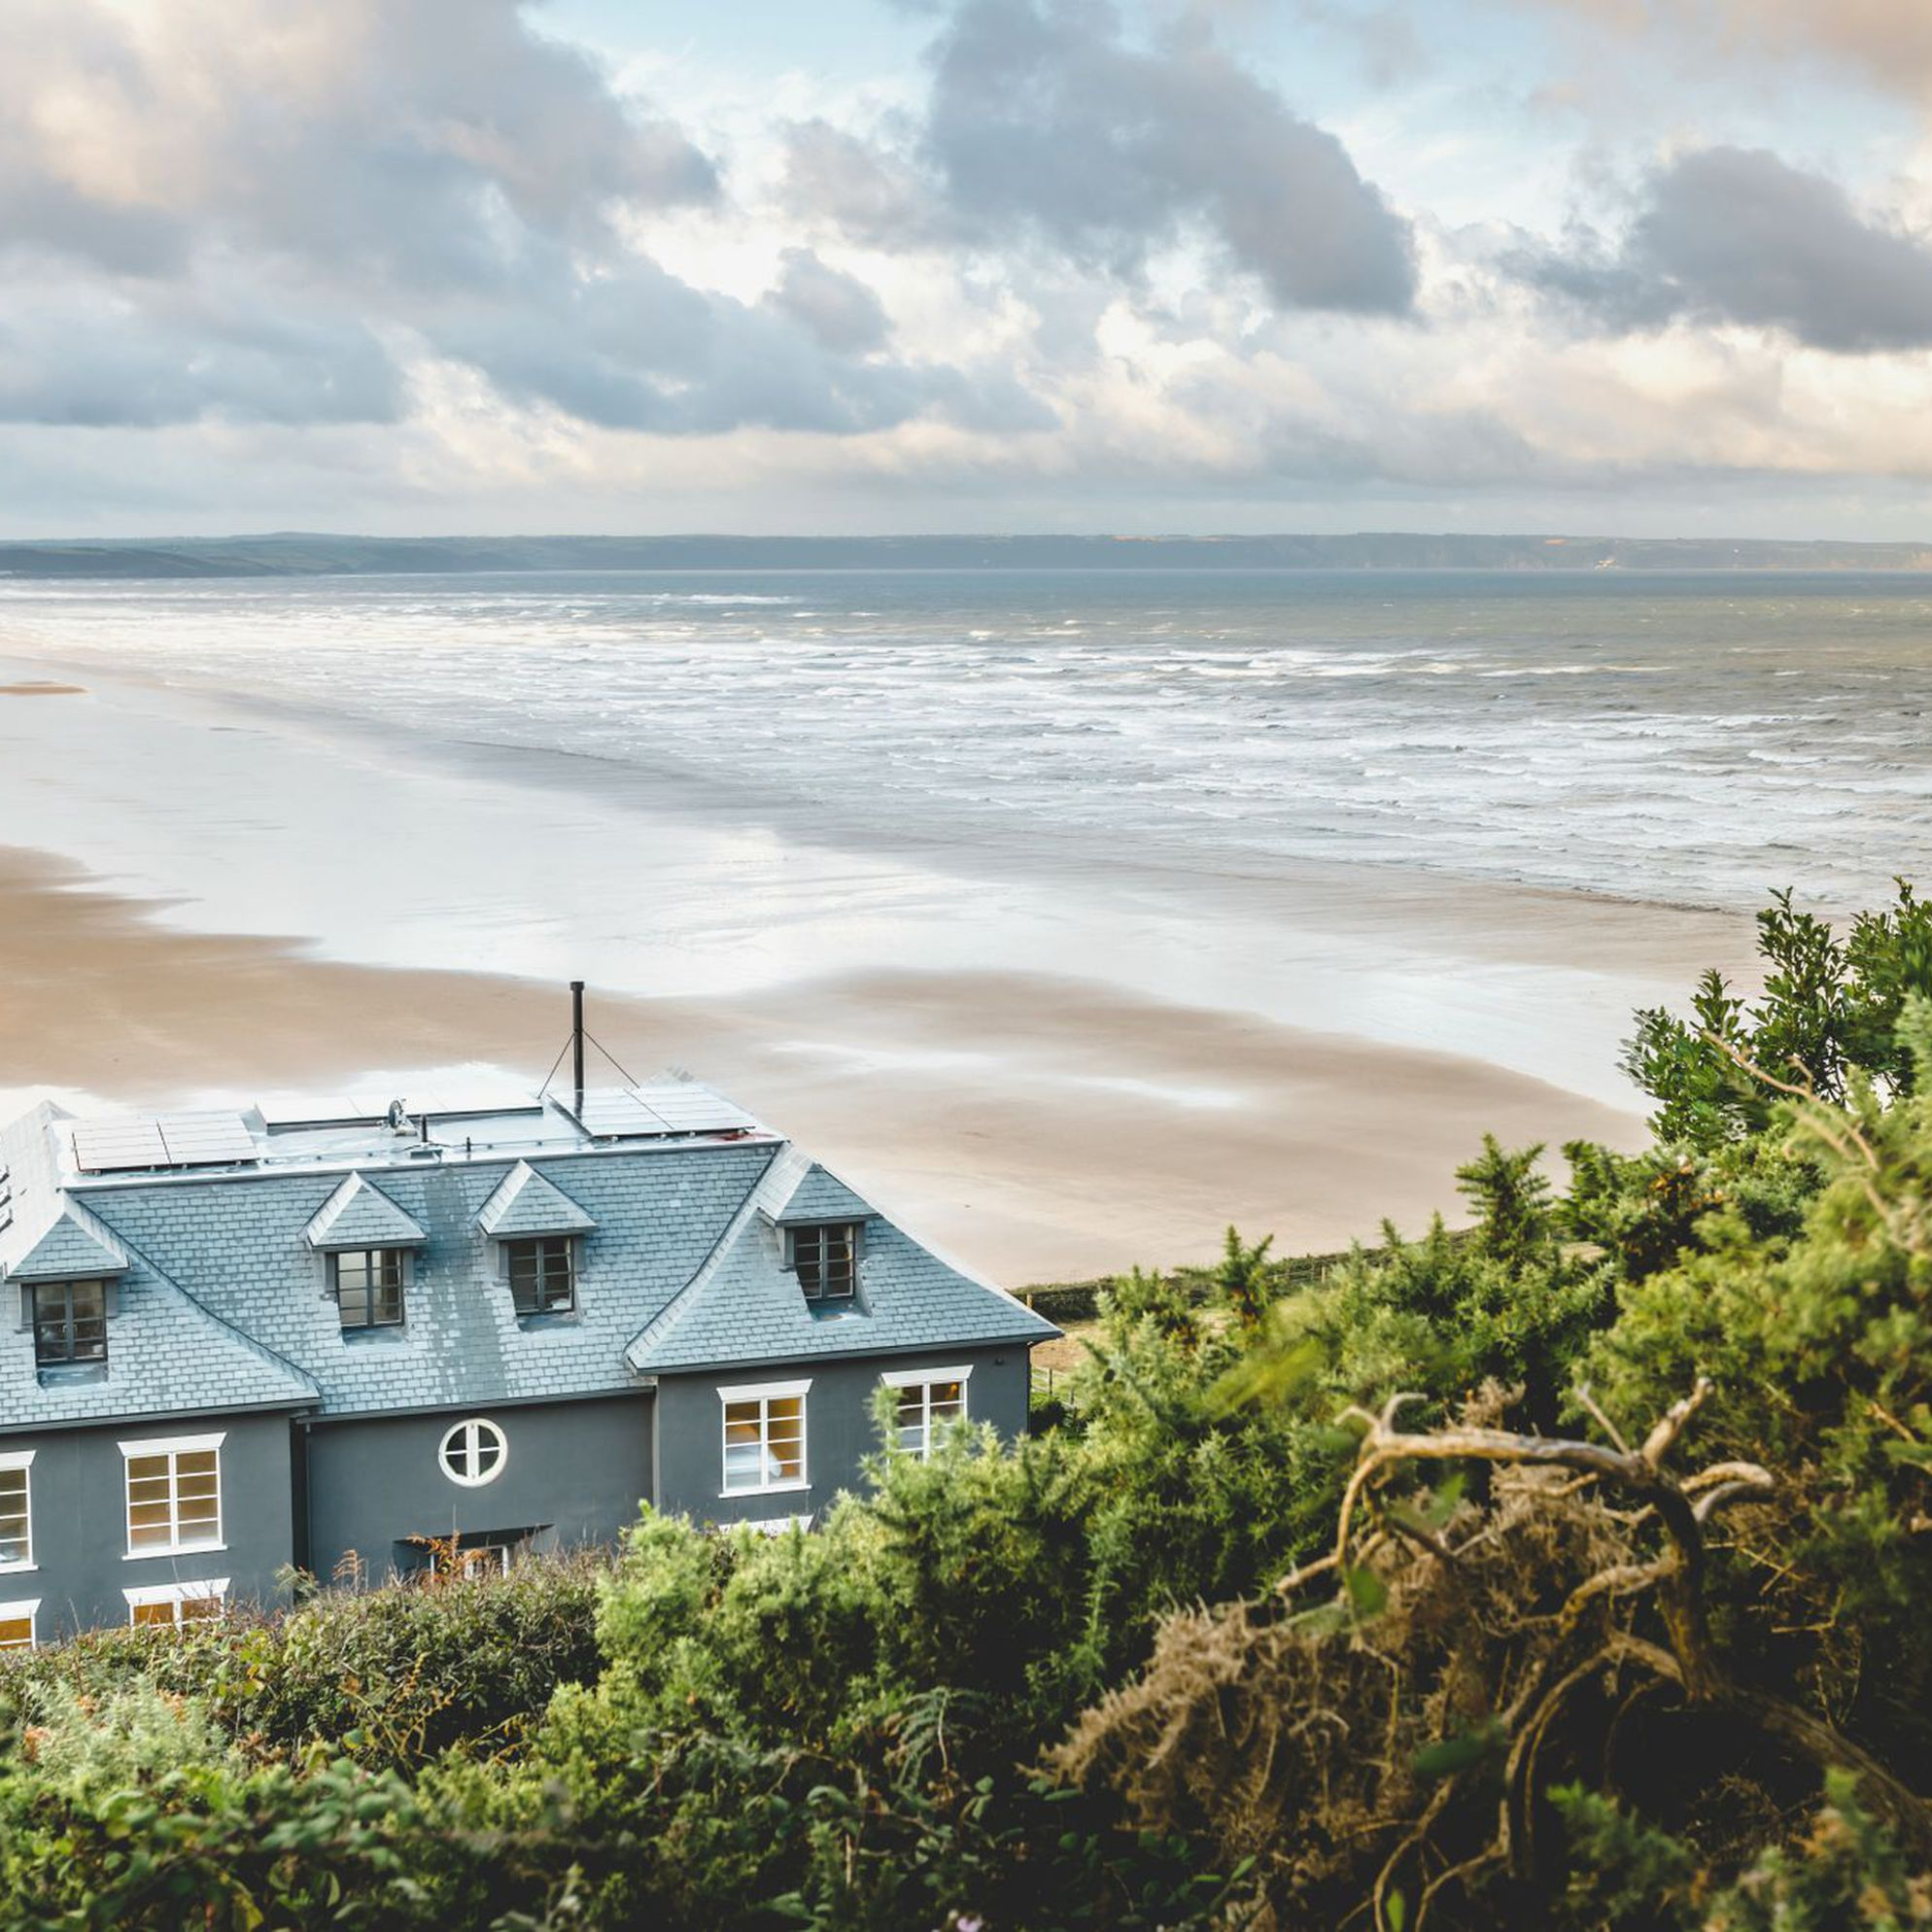 Coastal Cottages in Devon